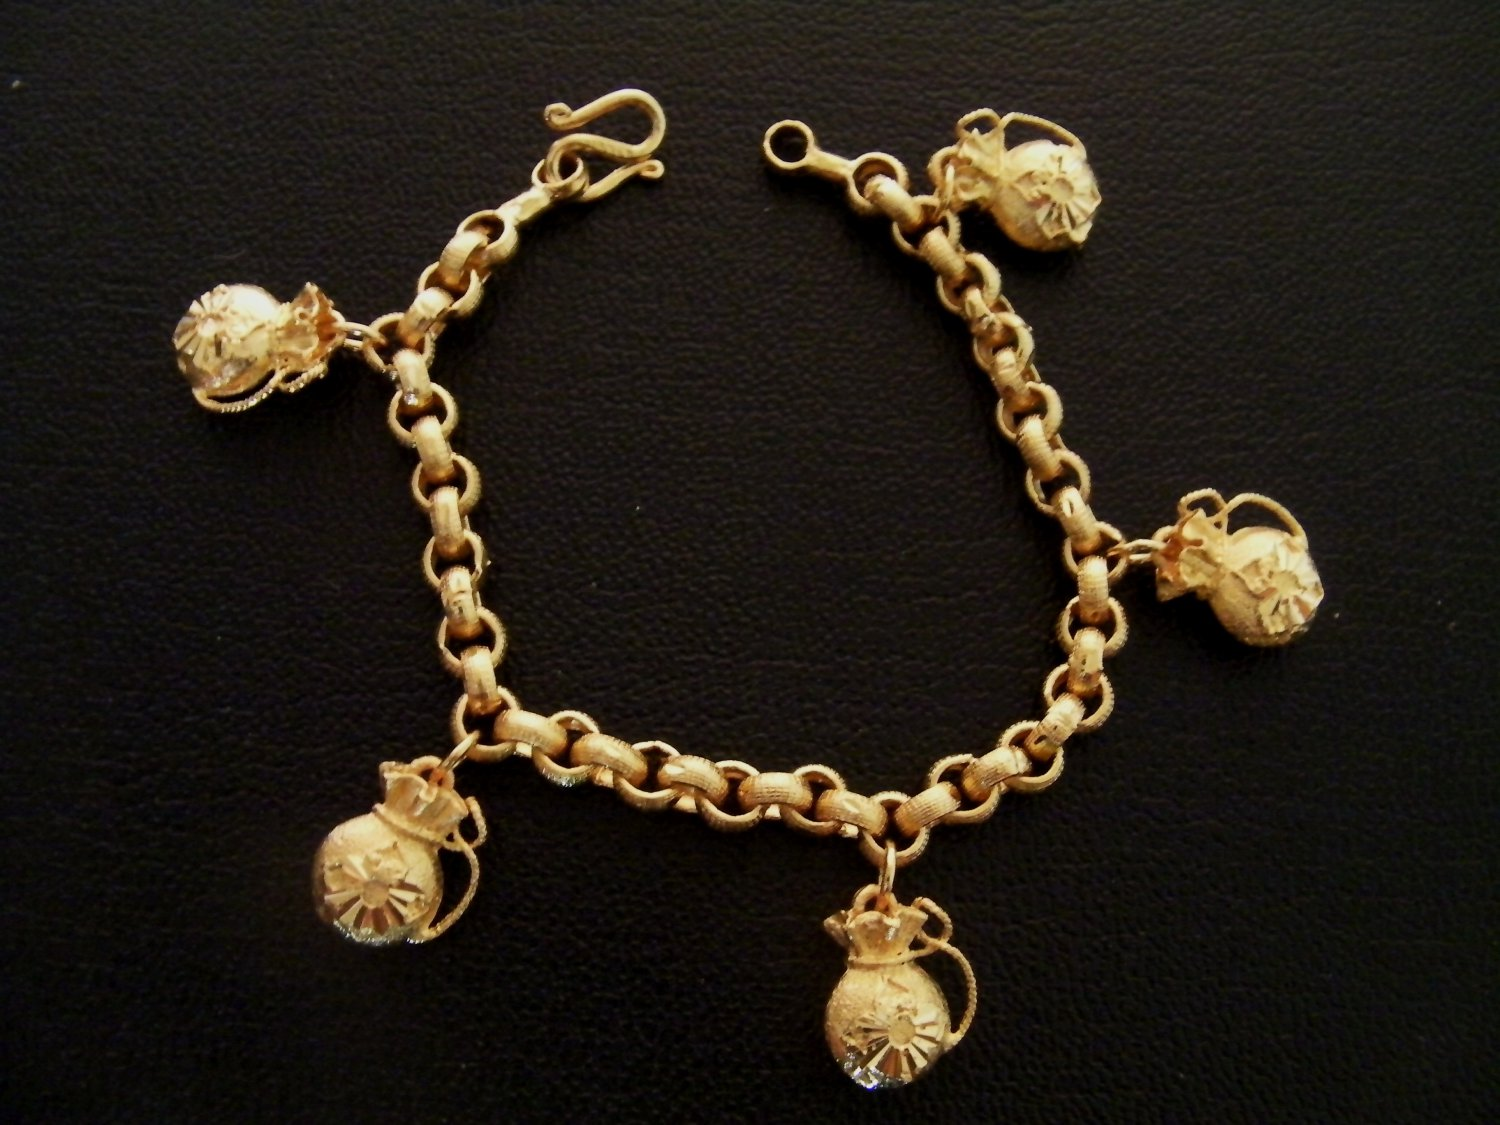 7.4 Inch nice lovely chain with money sac 100% 24K gold filled bracelet 125